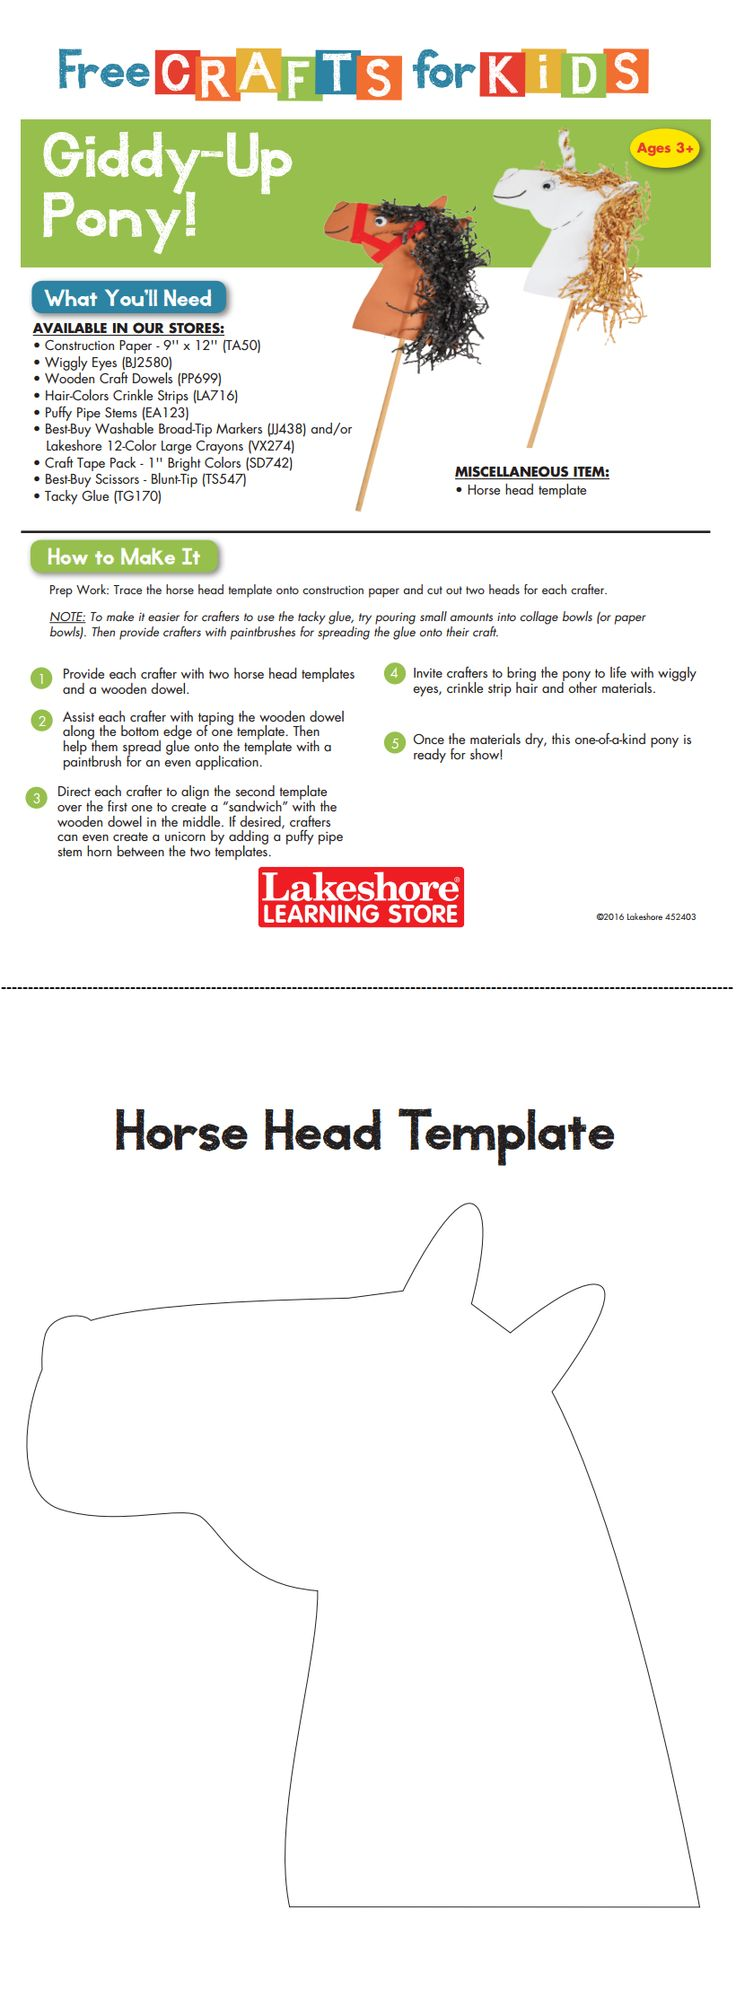 Instruction Sheet from Lakeshore's Free Crafts For Kids event featuring the Giddy-Up Pony!